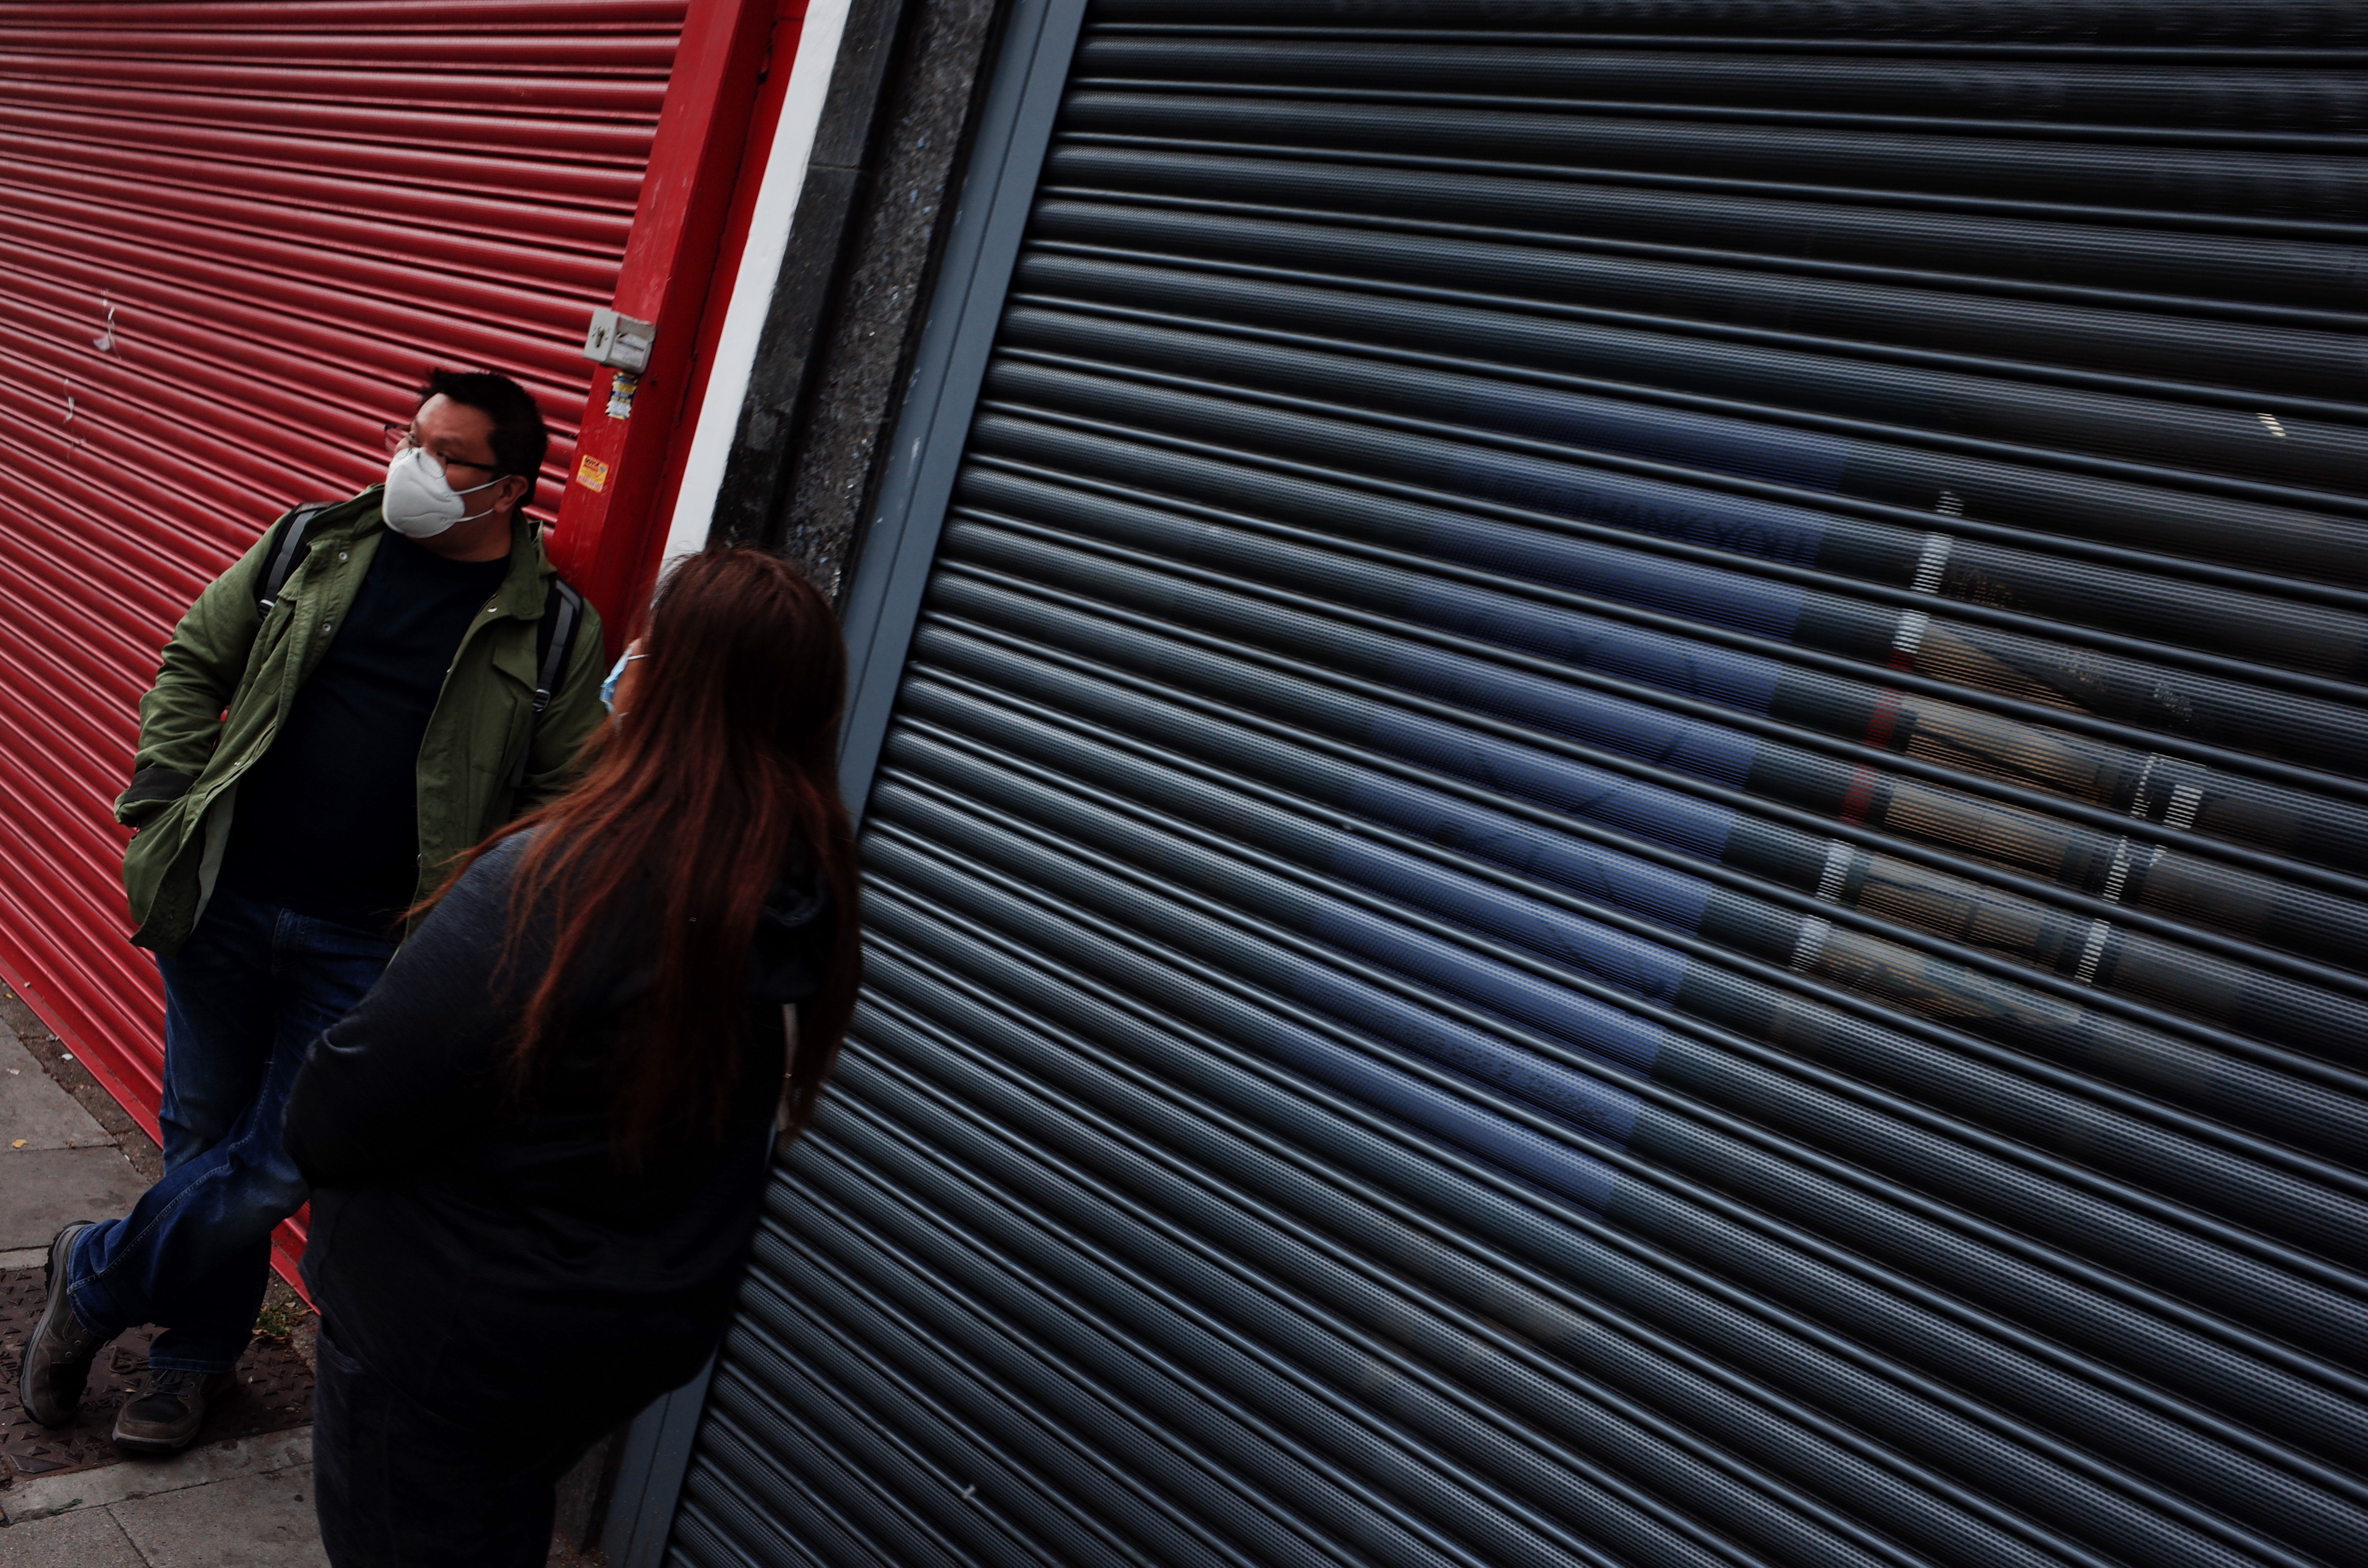 People wearing face masks stand beside shuttered stores on Kilburn High Road in London, England, on June 7, 2020. Covid-19 deaths across the UK now stand at 40,542 according to the daily tally from the Department of Health and Social Care, including an additional 77 deaths added today. (Photo by David Cliff/NurPhoto via Getty Images)